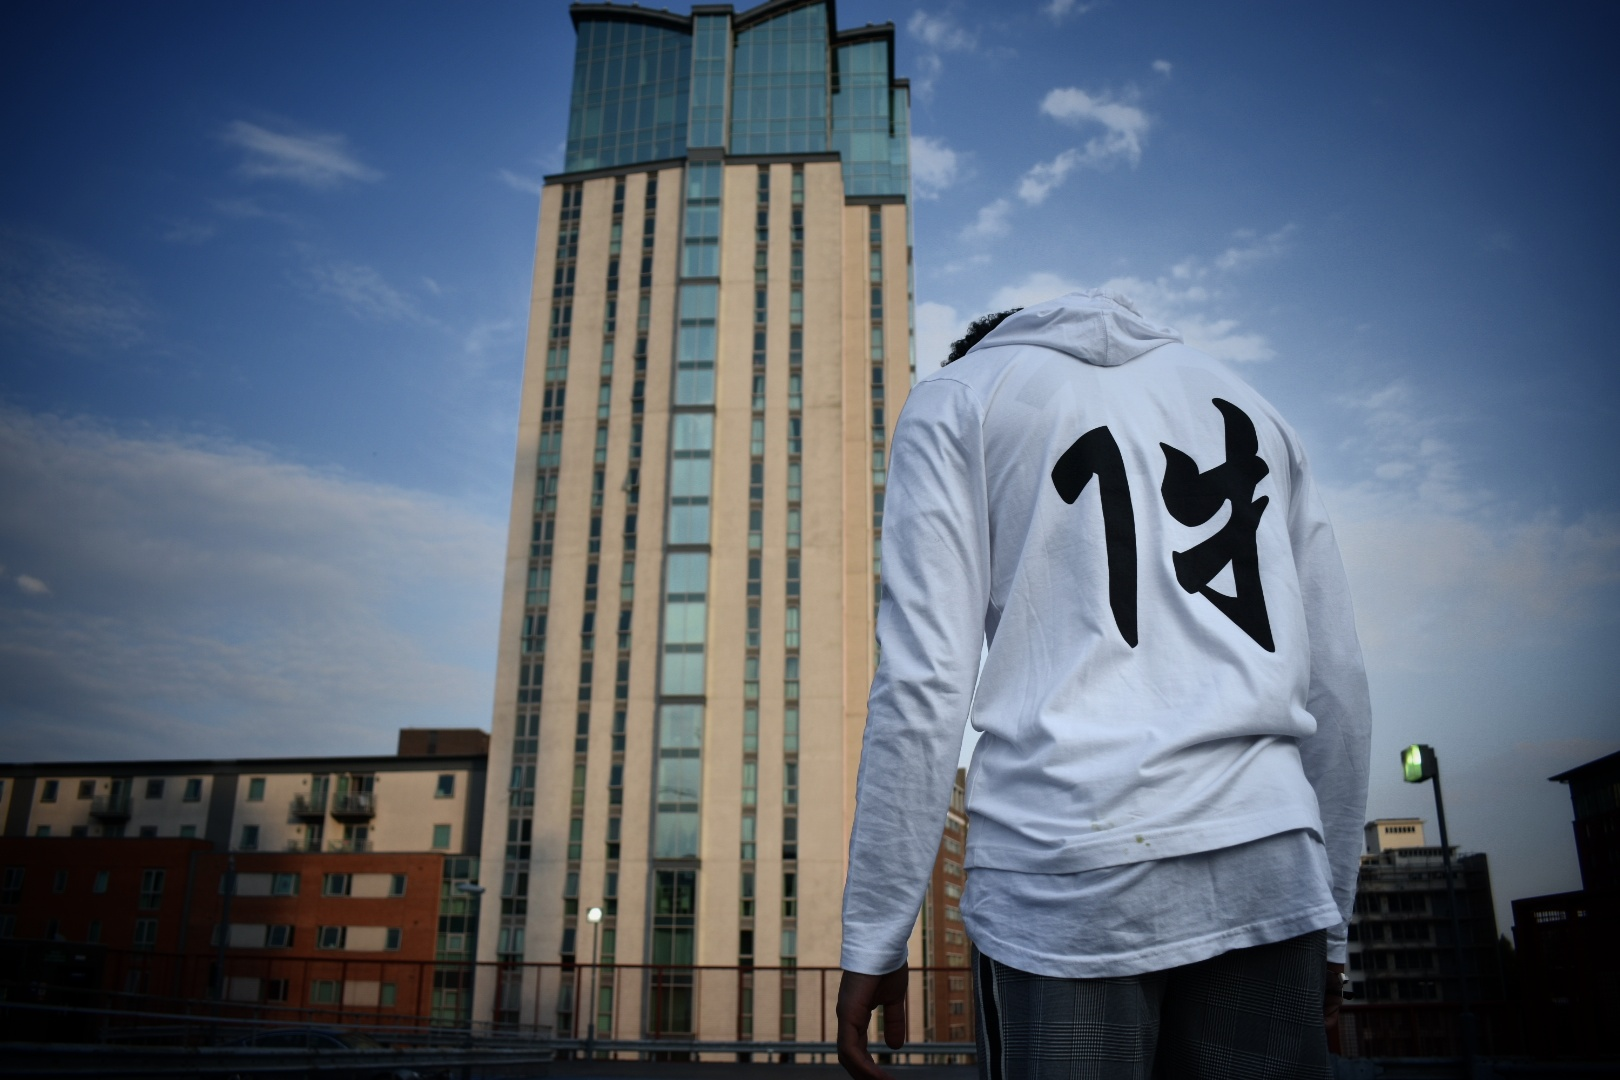 Toodie head down available black & white from Hoozy 10% discount if you use King_sii10